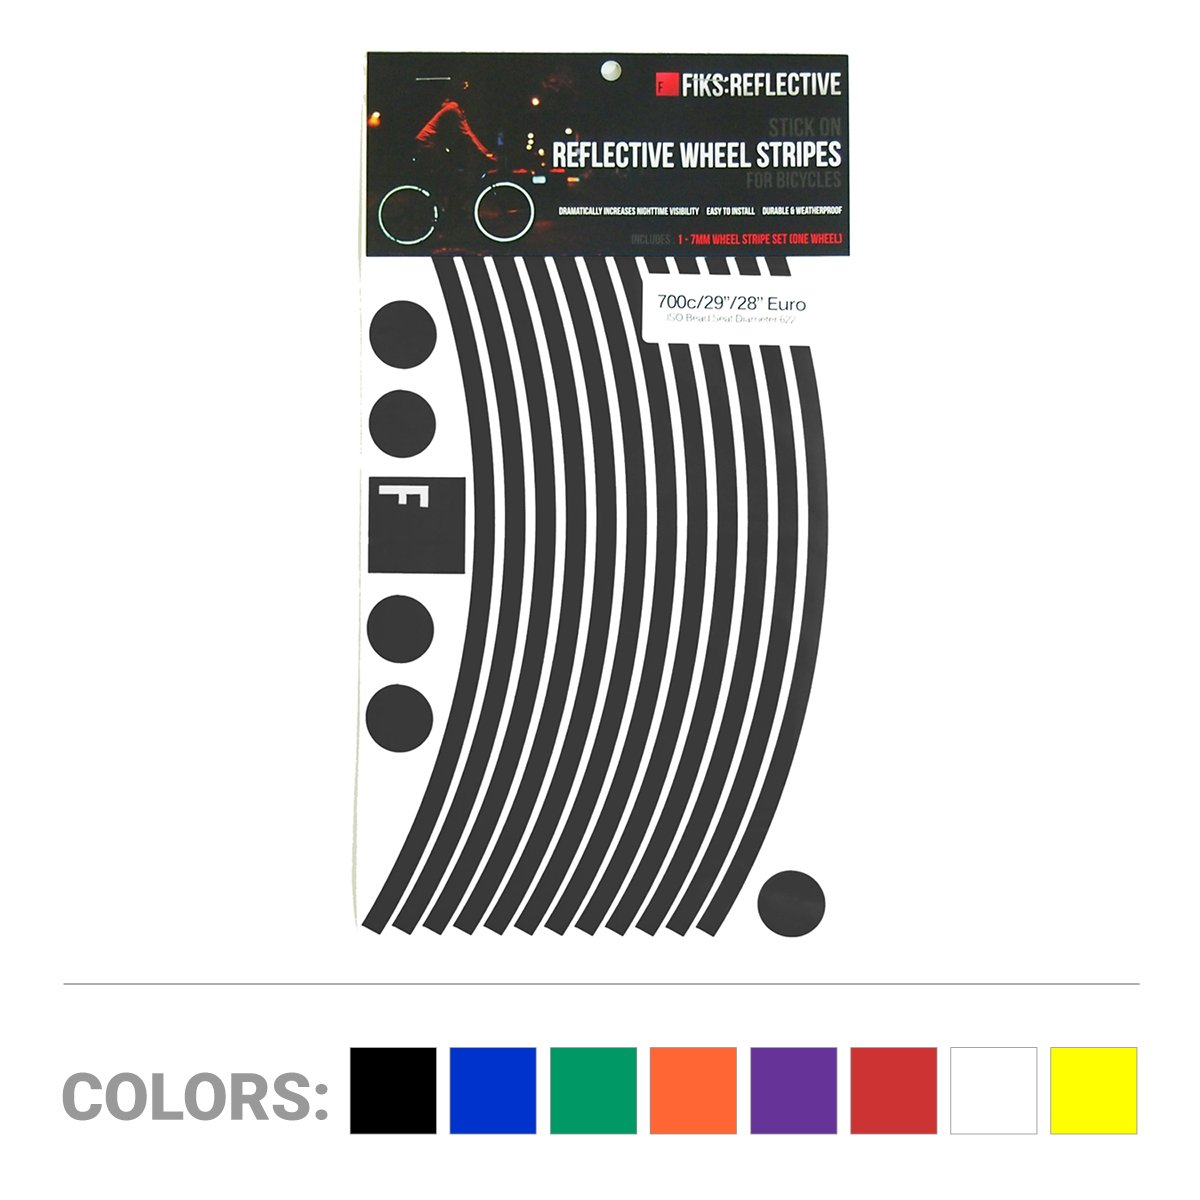 FIKS:Reflective Wheel Stripes Best Quality Long Lasting Bicycle Reflector Sticker - Black